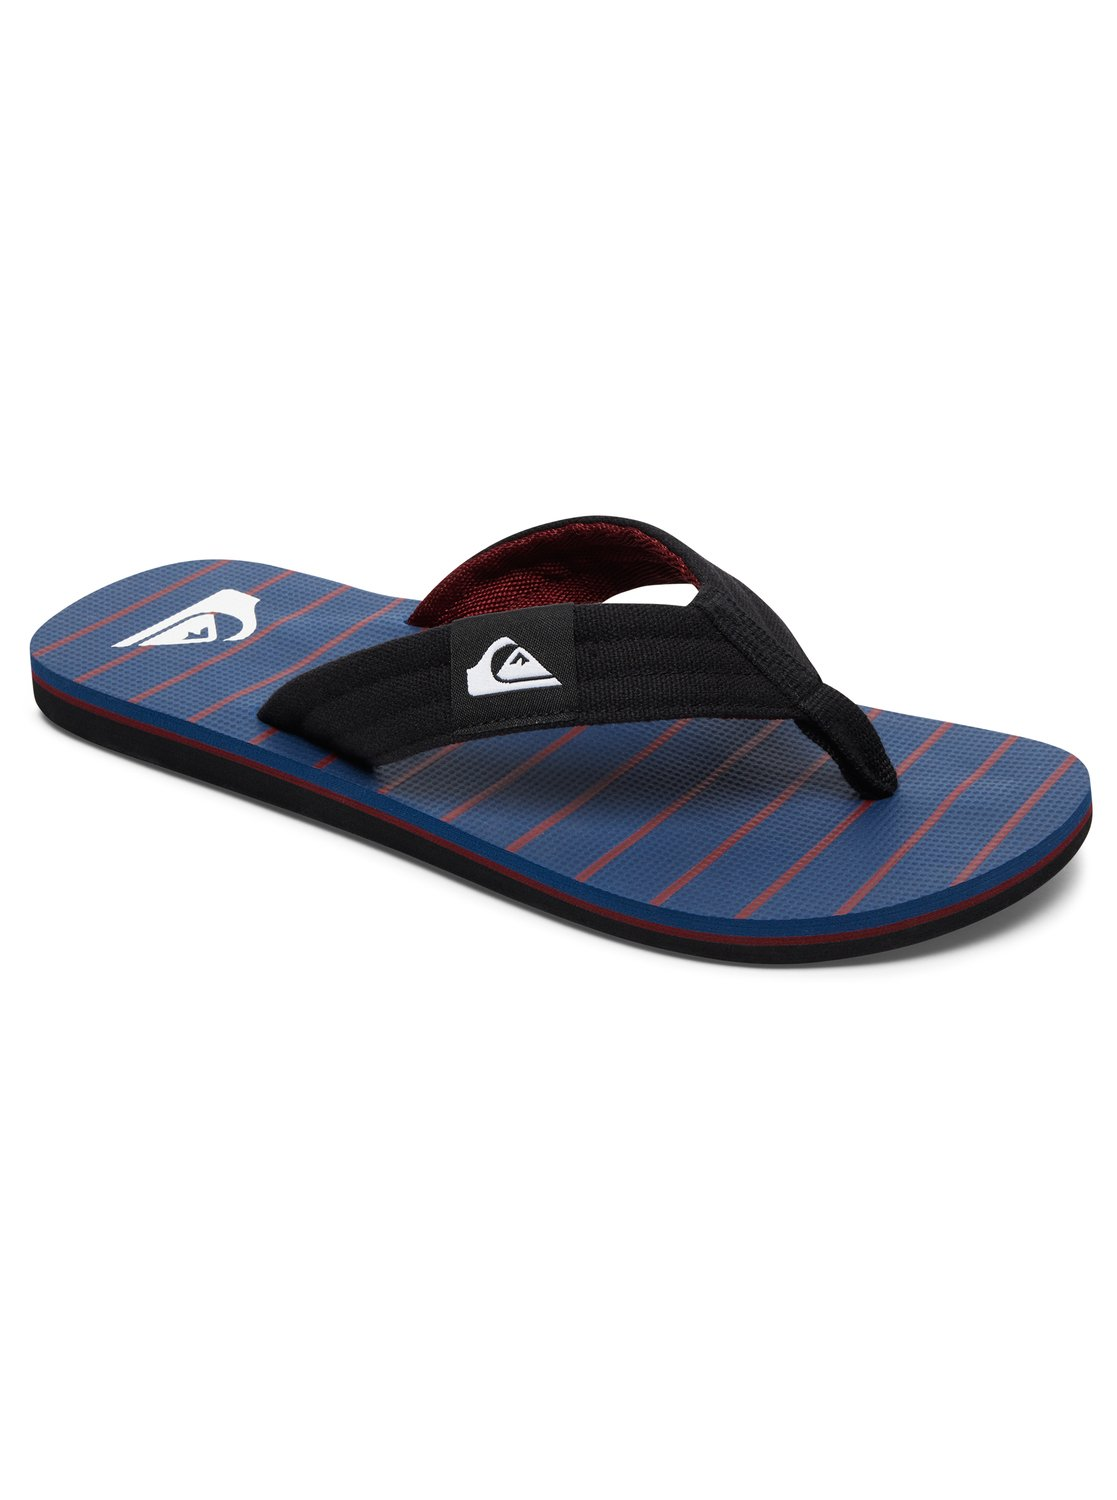 Mens Quiksilver Mokokai Layback 3 Point Flip Flops Sandals Red White Blue USA